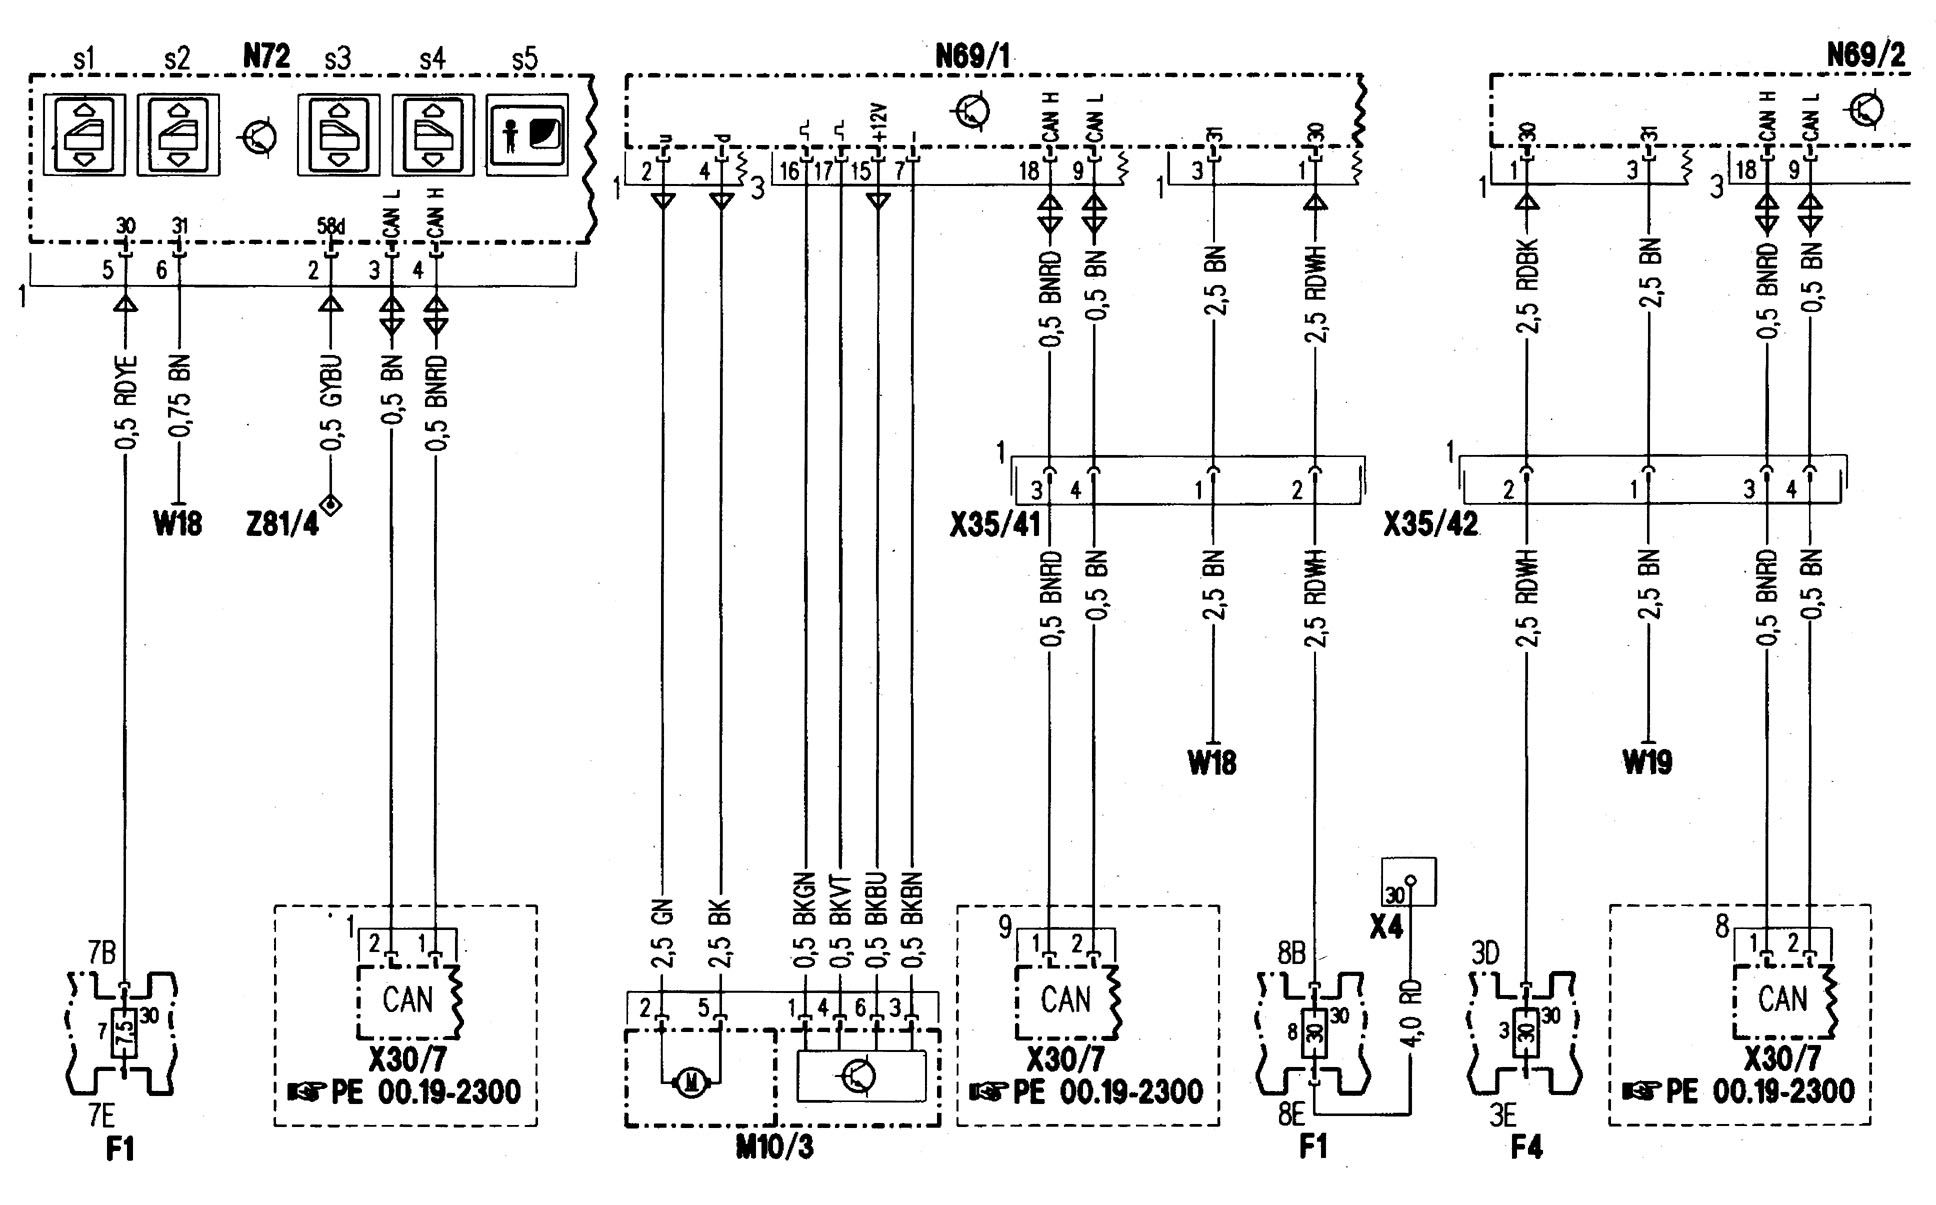 2000 ford expedition window wiring diagram warn winch 4 solenoid 1998 power windows library